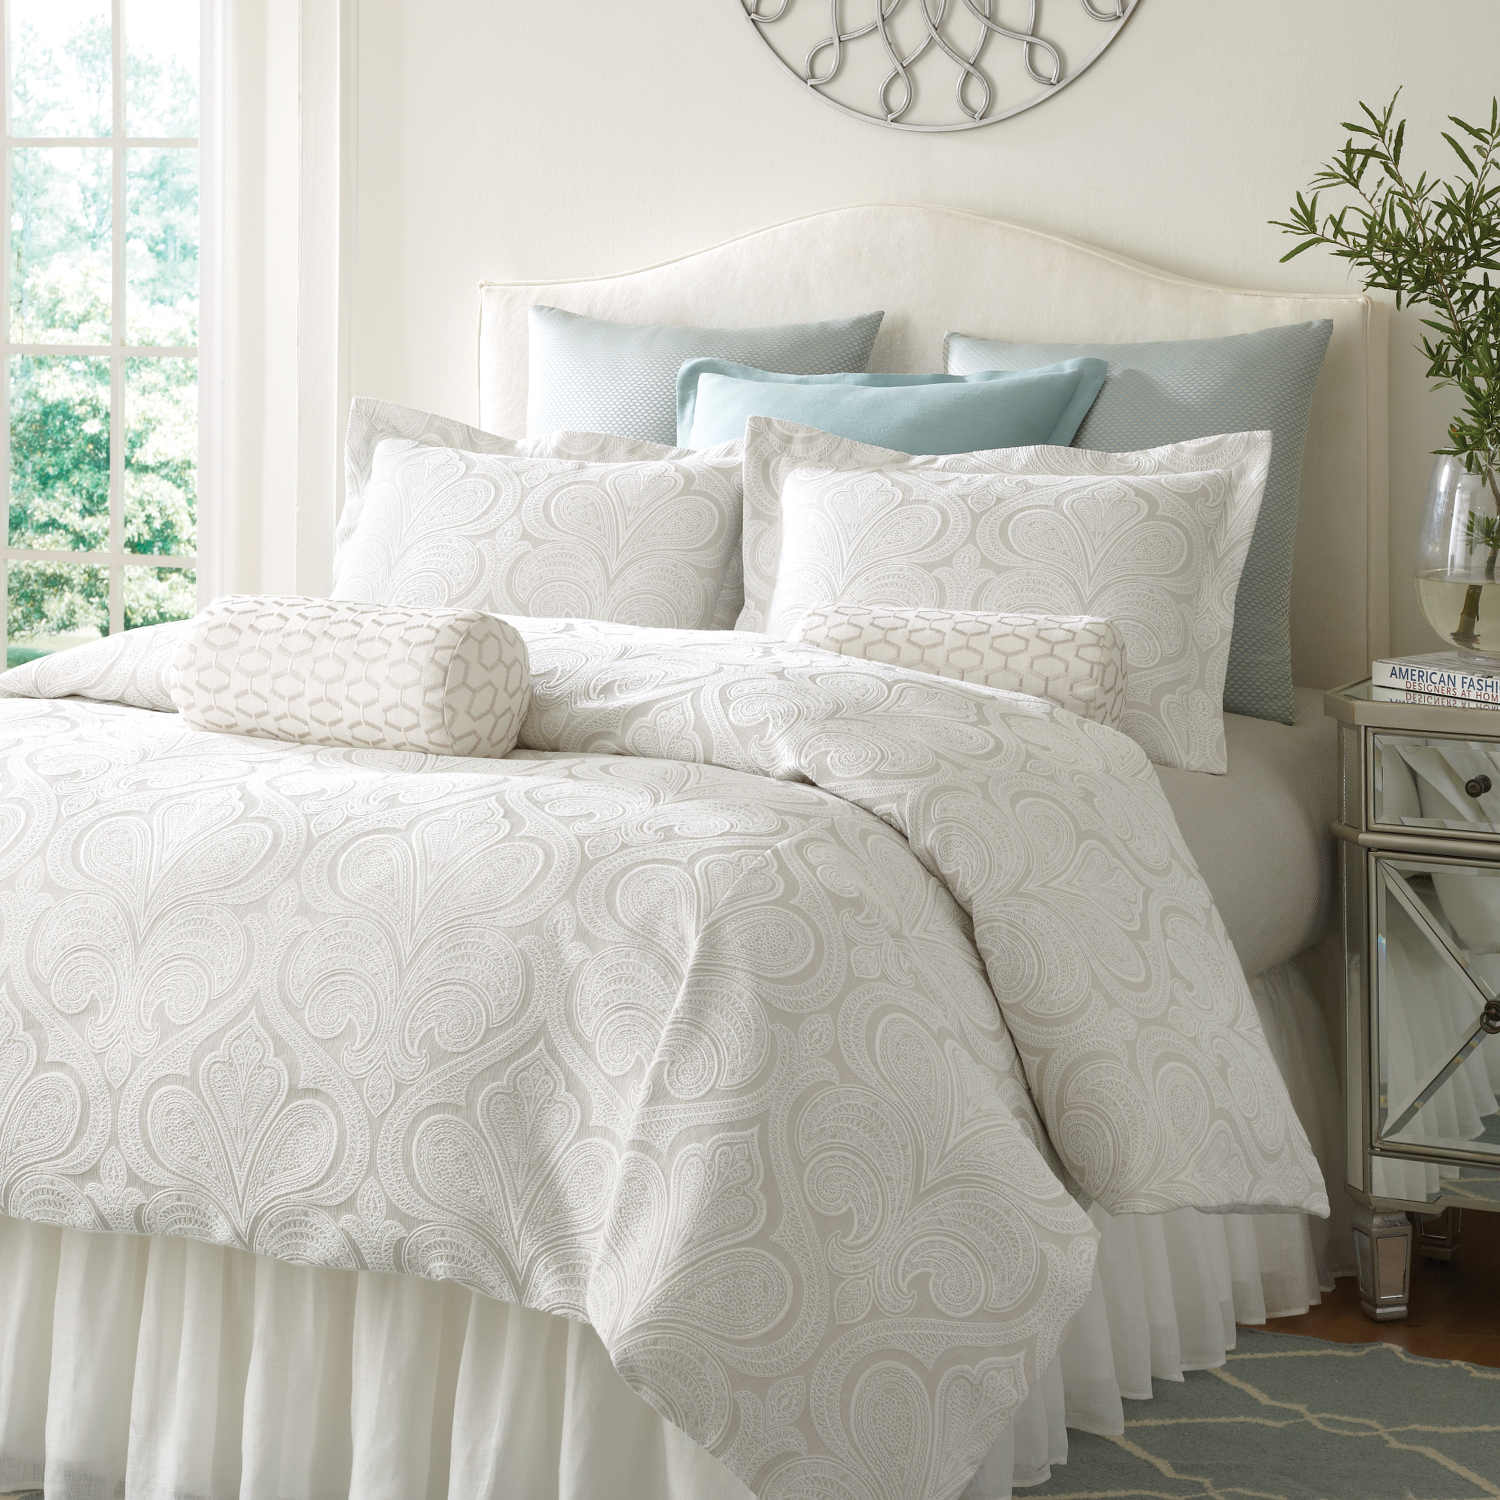 wildcat territory bedding rani collection -